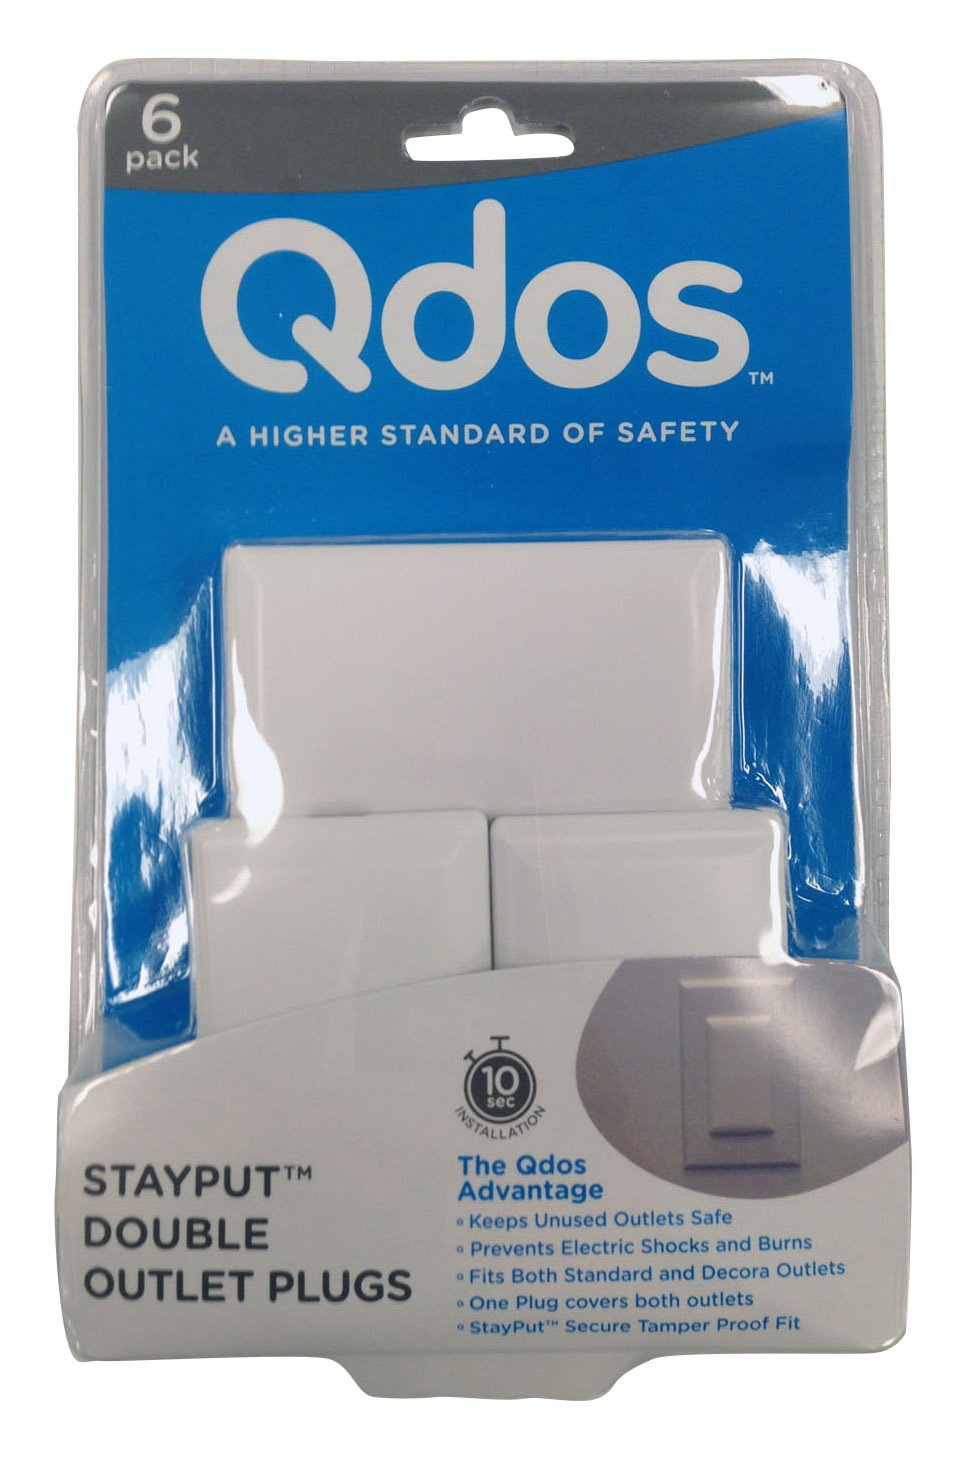 QDOS STAYPUT Double Outlet Plug Cover - One Plug Covers Both Outlets! - Secure Fit and Beveled Edges Prevent Small Fingers from Removing Unlike Inferior Products| Fits All Outlets | 6 Pack | White Regal Lager 5712088210589